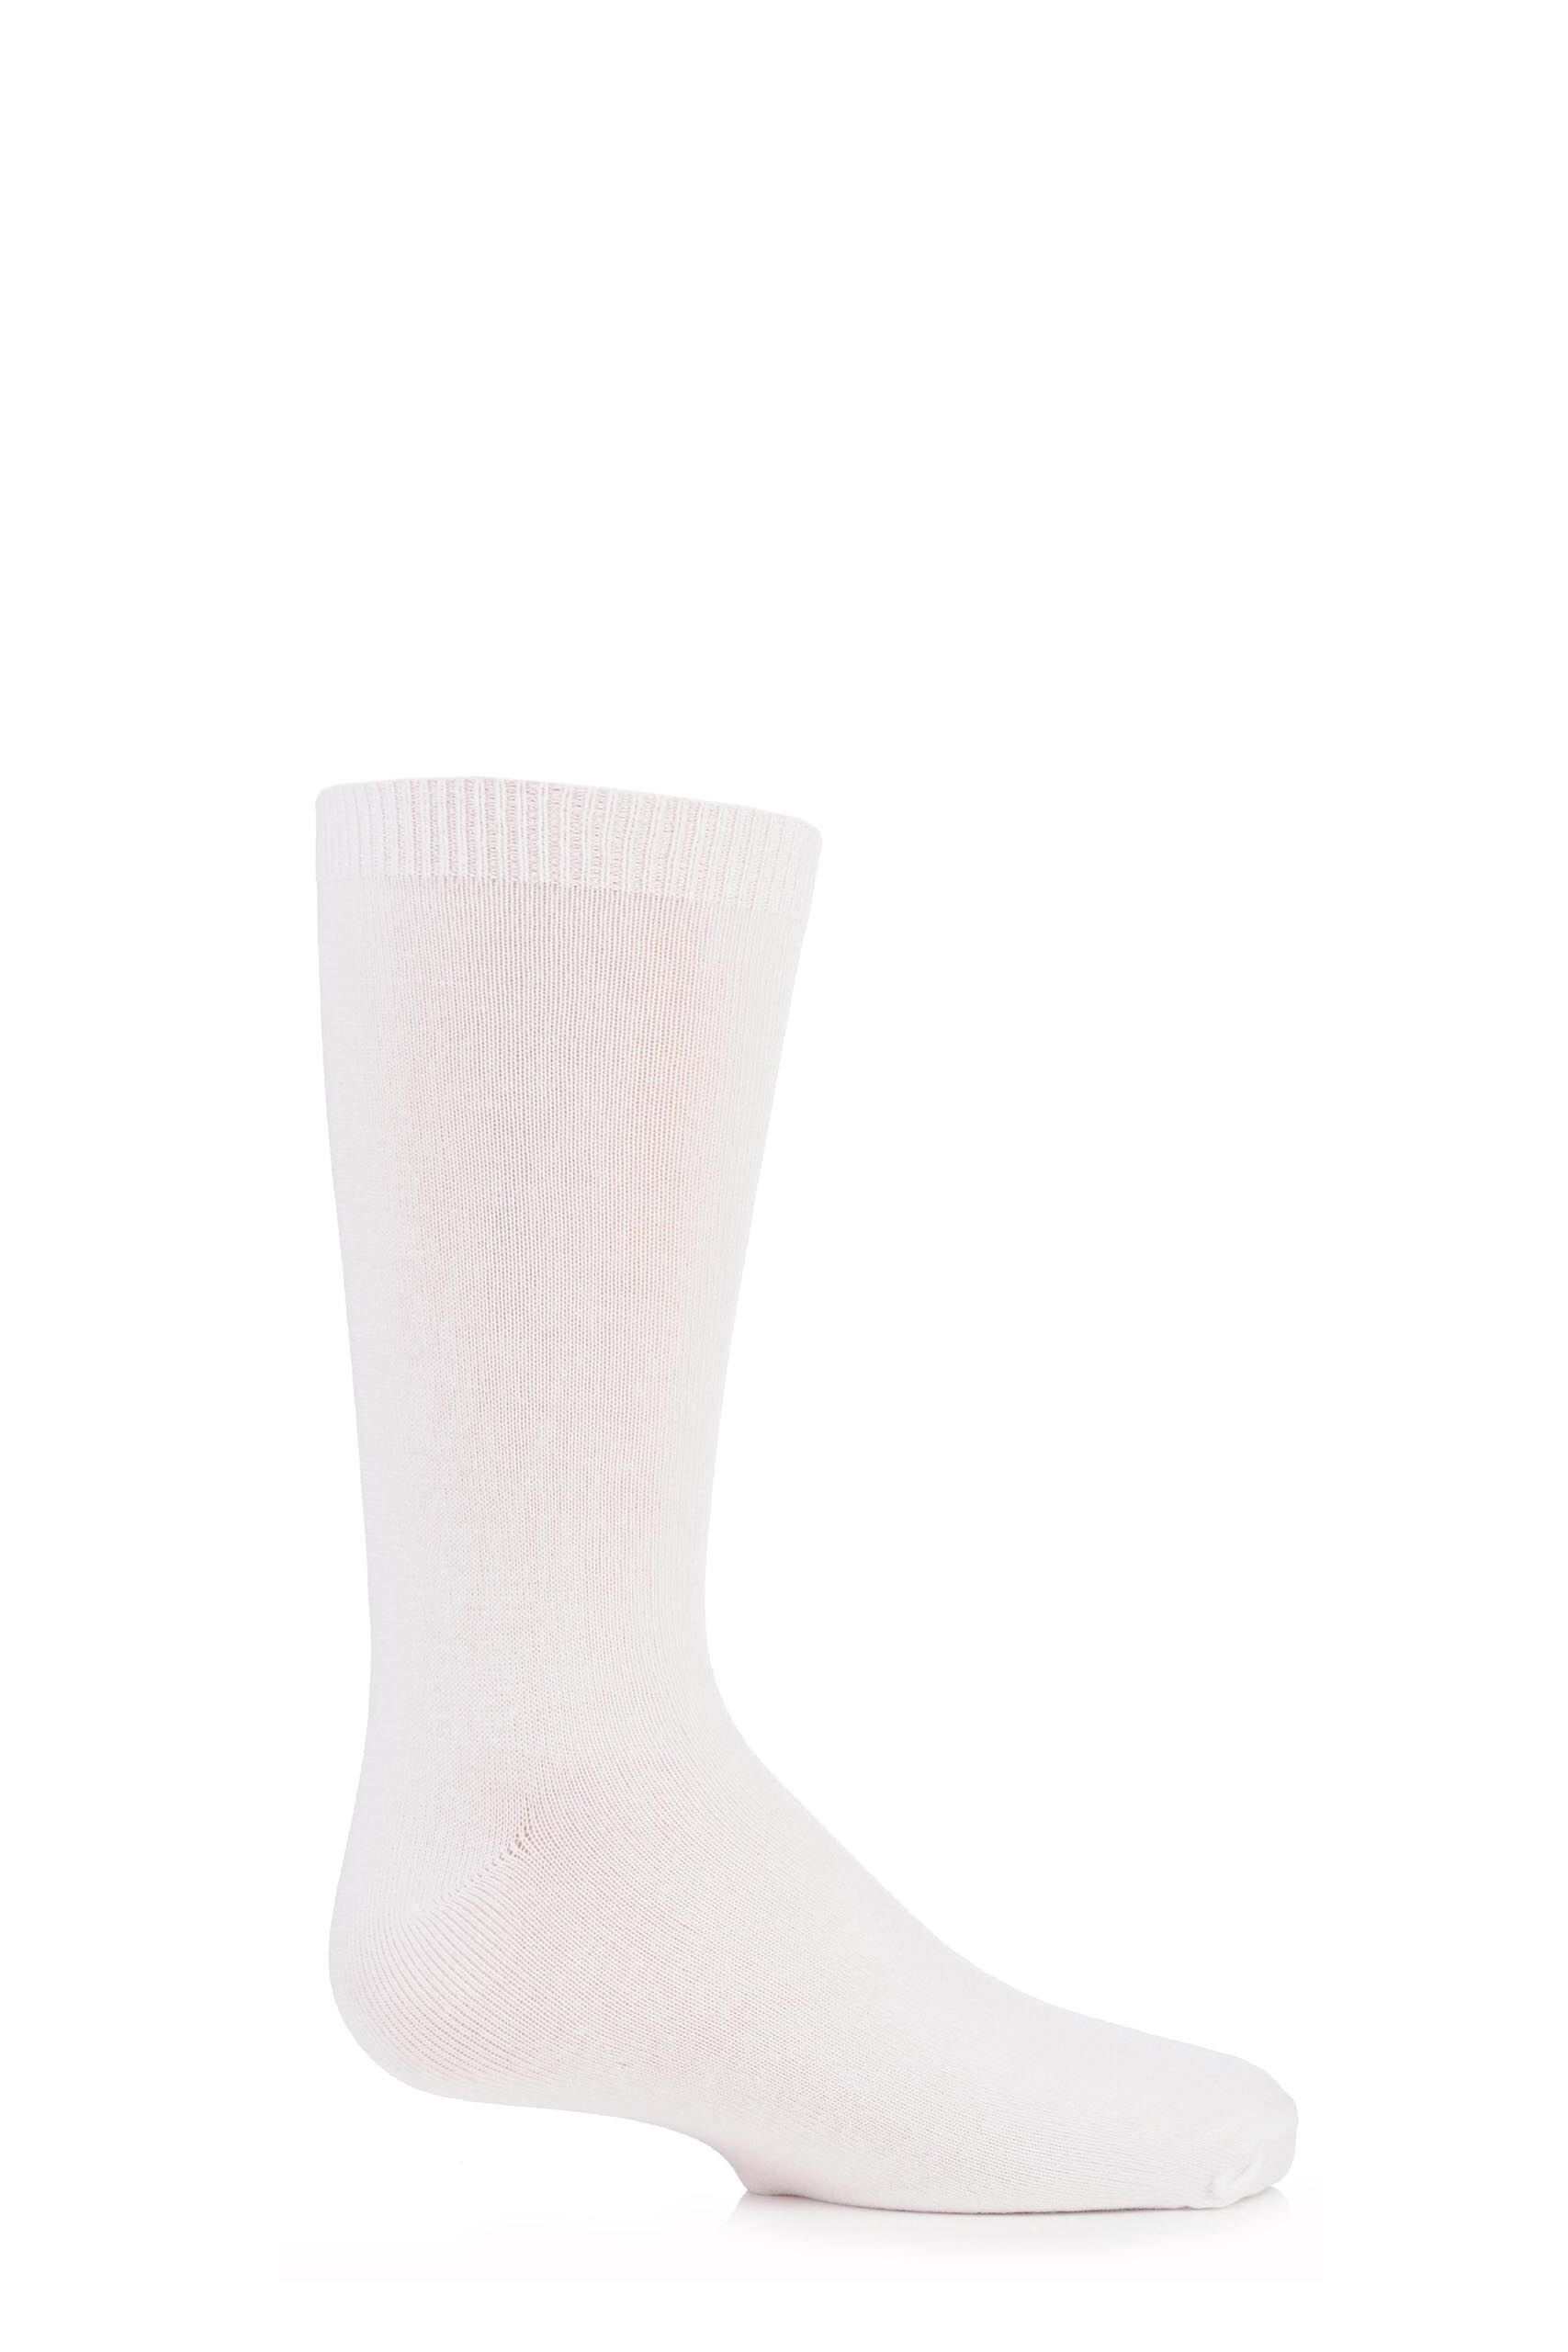 Image of 1 Pair White Plain Bamboo Socks with Comfort Cuff and Smooth Toe Seams Kids Unisex 12.5-3.5 Kids (8-12 Years) - SOCKSHOP